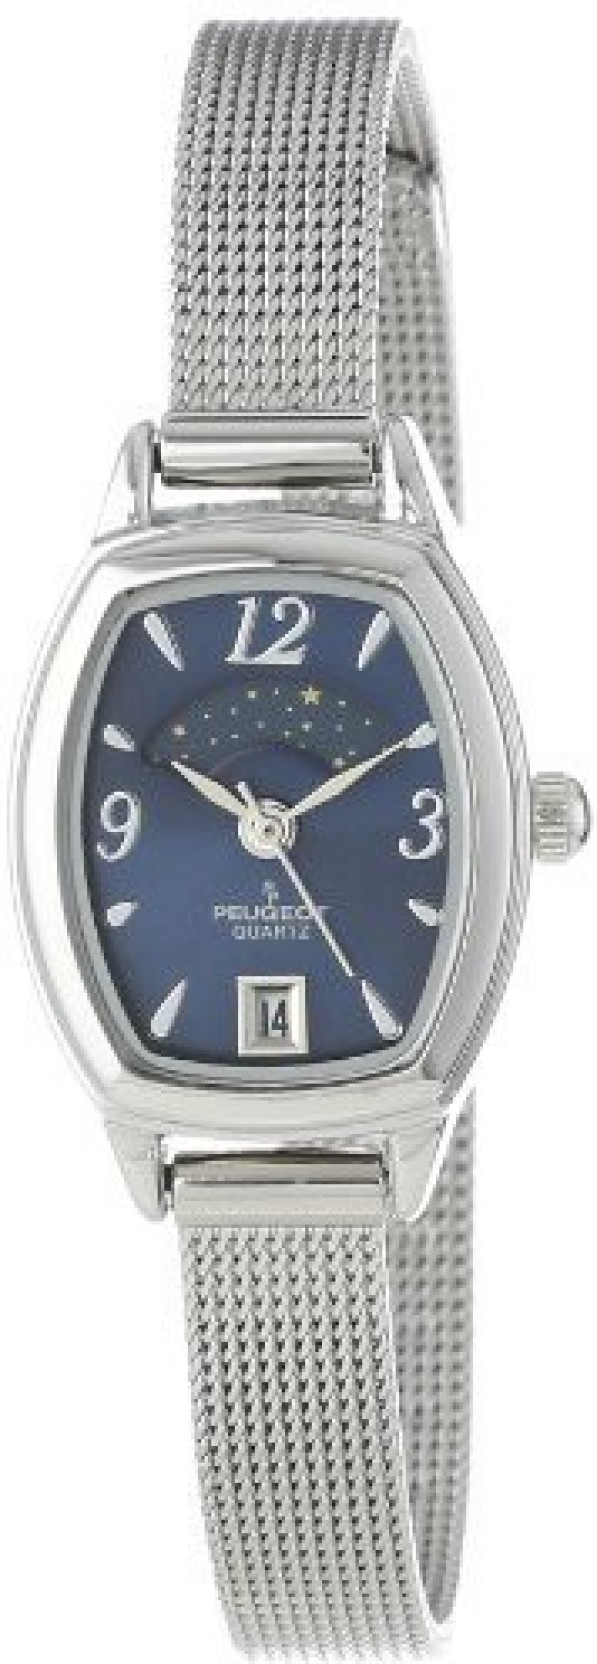 425f9f85370 Peugeot blue4167 Peugeot Women s Slim Silver Mesh Decorative Sun Moon Phase  Blue Face Vintage Dress Watch. ADD TO CART